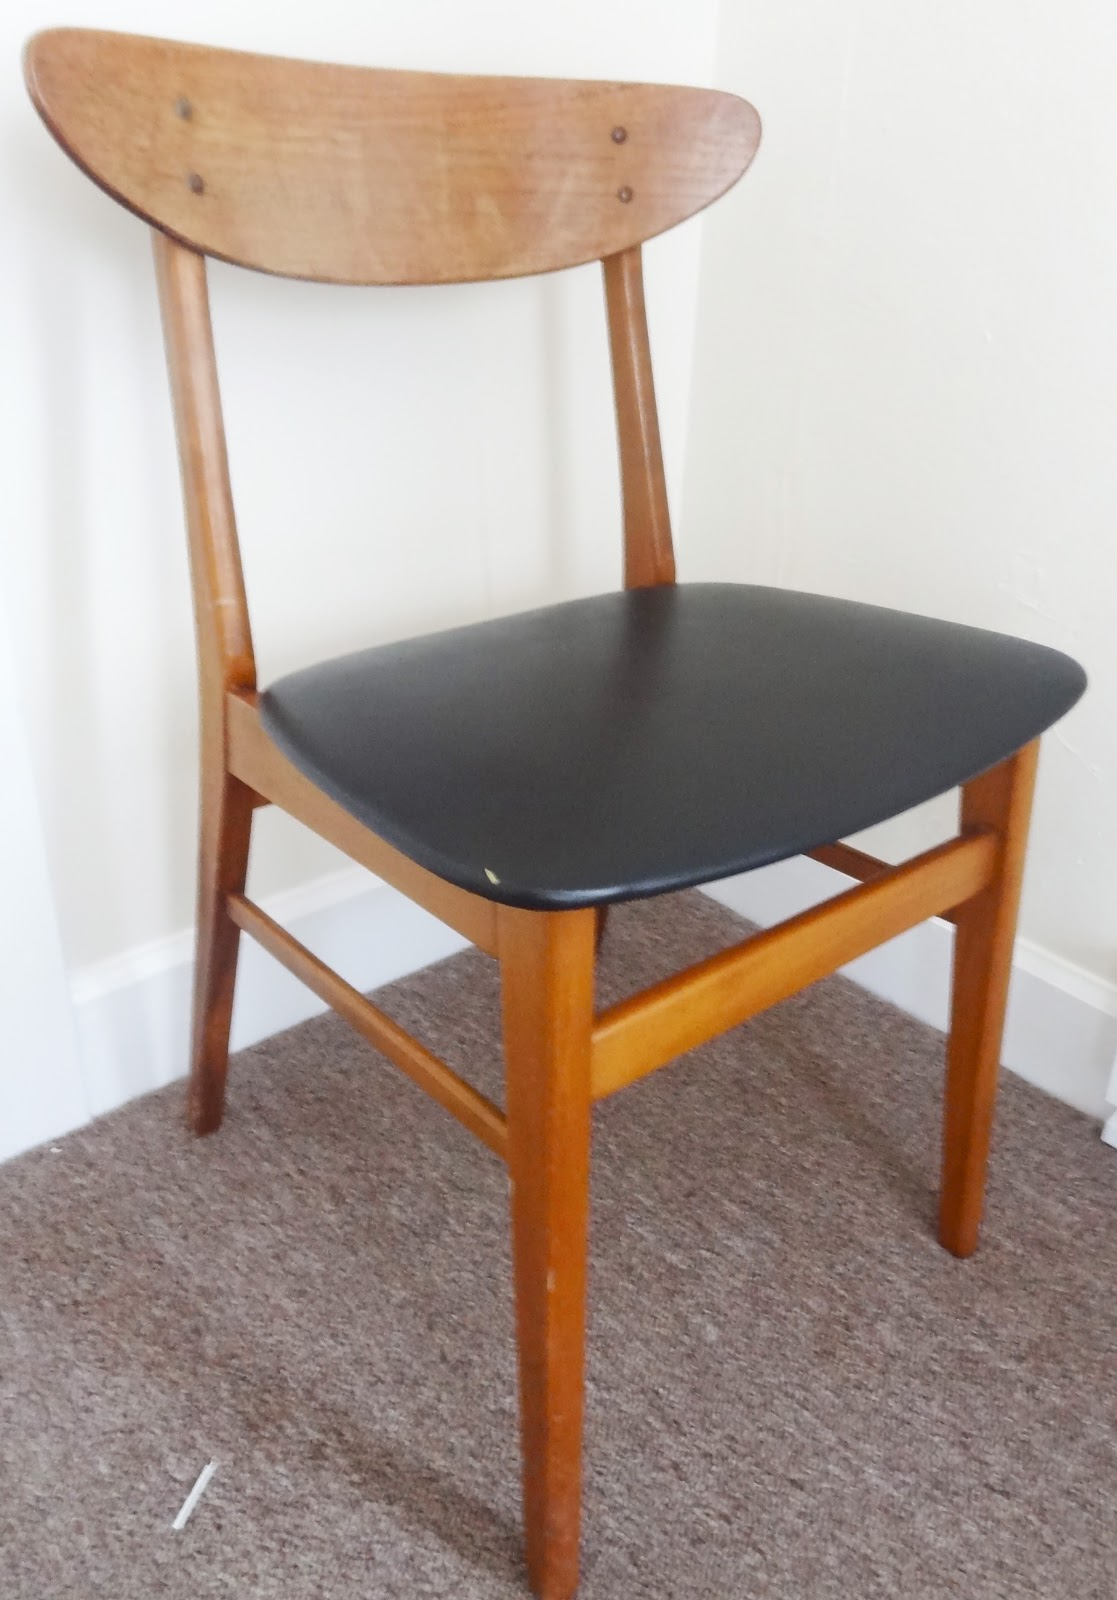 Where To Get Chairs Reupholstered Back Support Cushion For Office Chair Uk Houzz Quick Fix Reupholster A Seat Revamp Homegoods